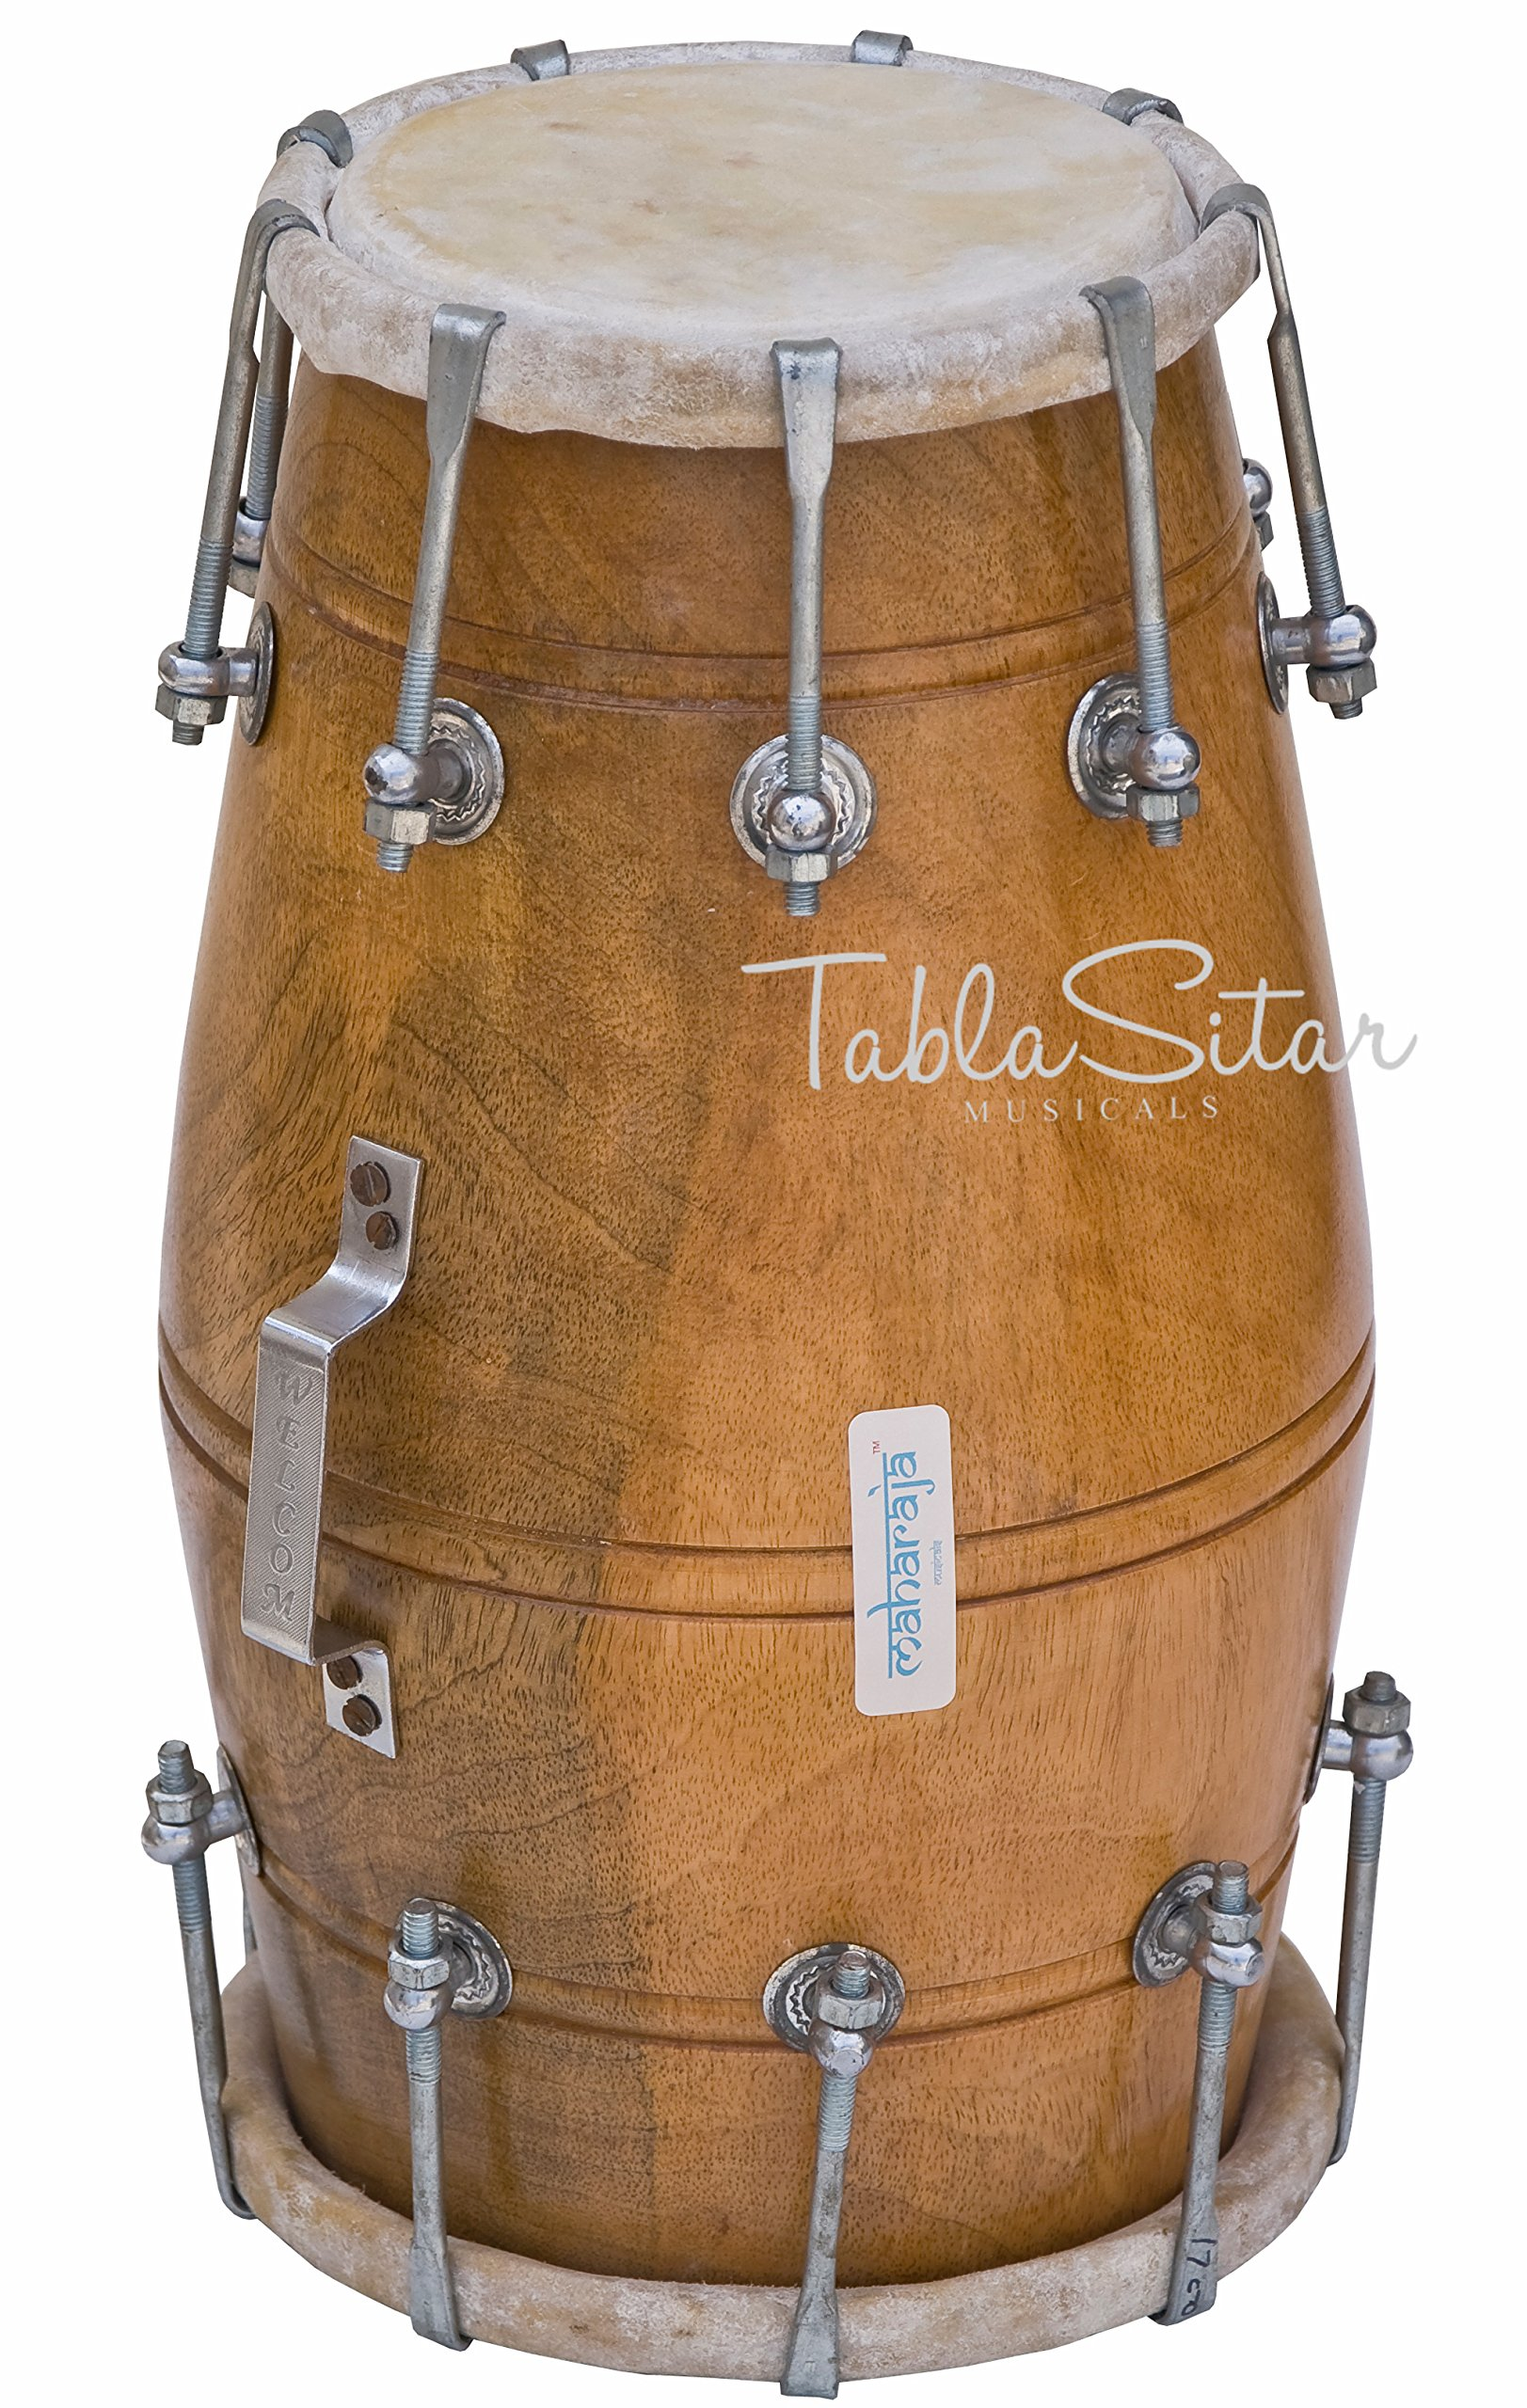 Maharaja Musicals Dholak Drum, Mango Wood, Bolt-tuned, Padded Bag, Spanner, Dholki Musical Instrument (PDI-AJD)